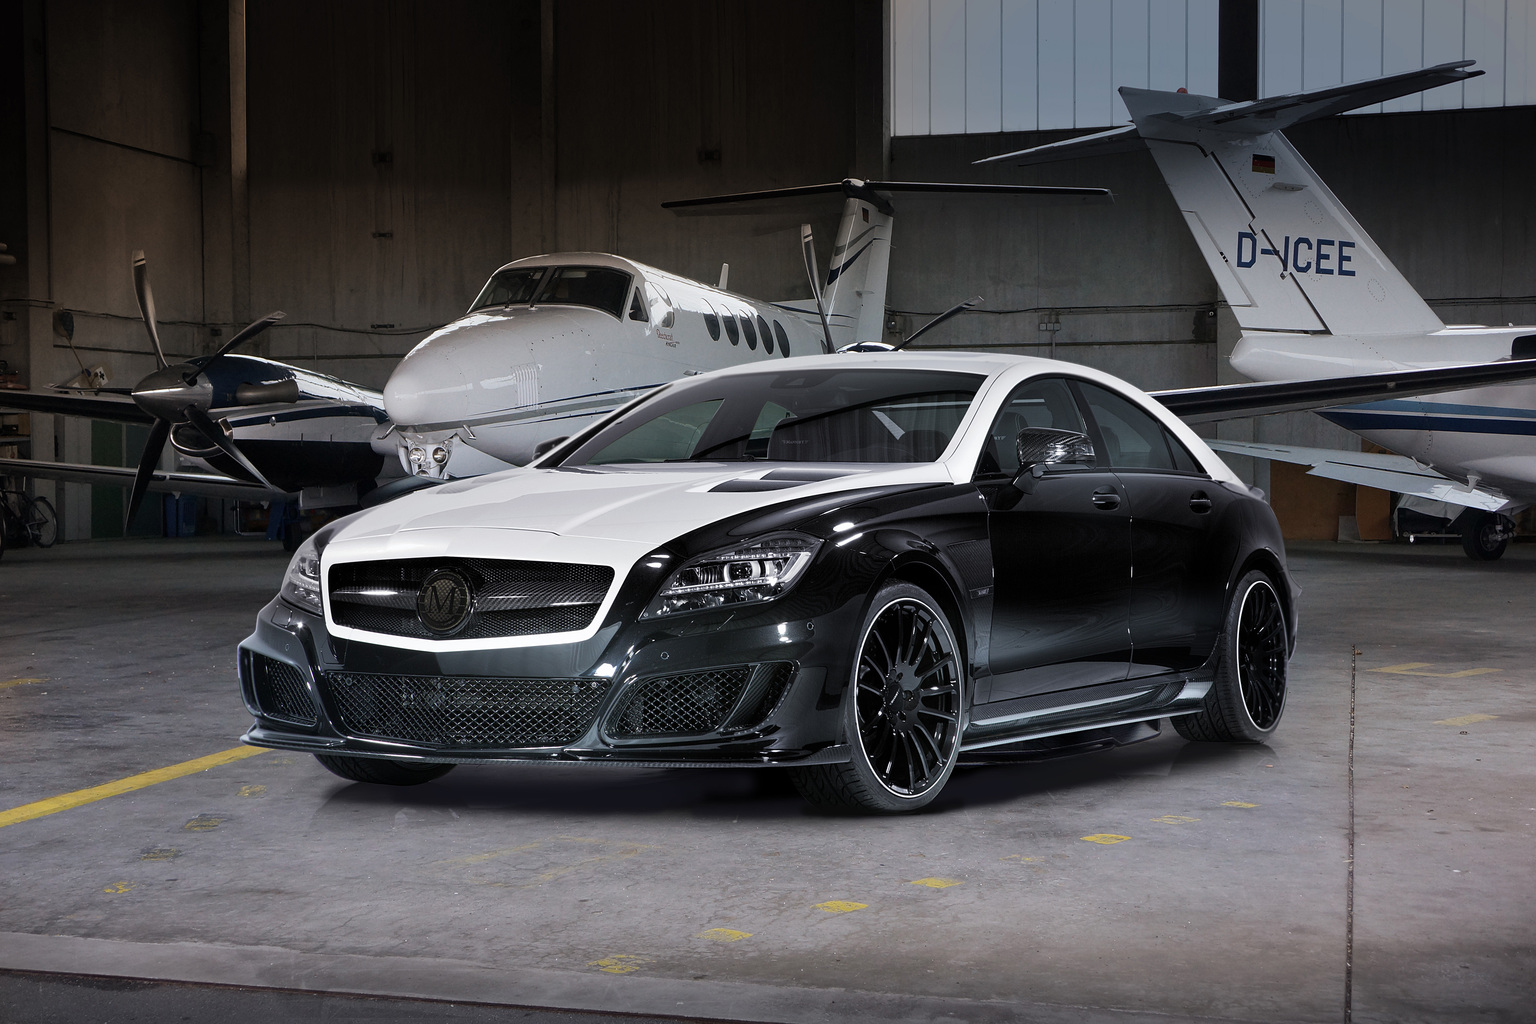 2013 mansory cls 63 amg. Black Bedroom Furniture Sets. Home Design Ideas